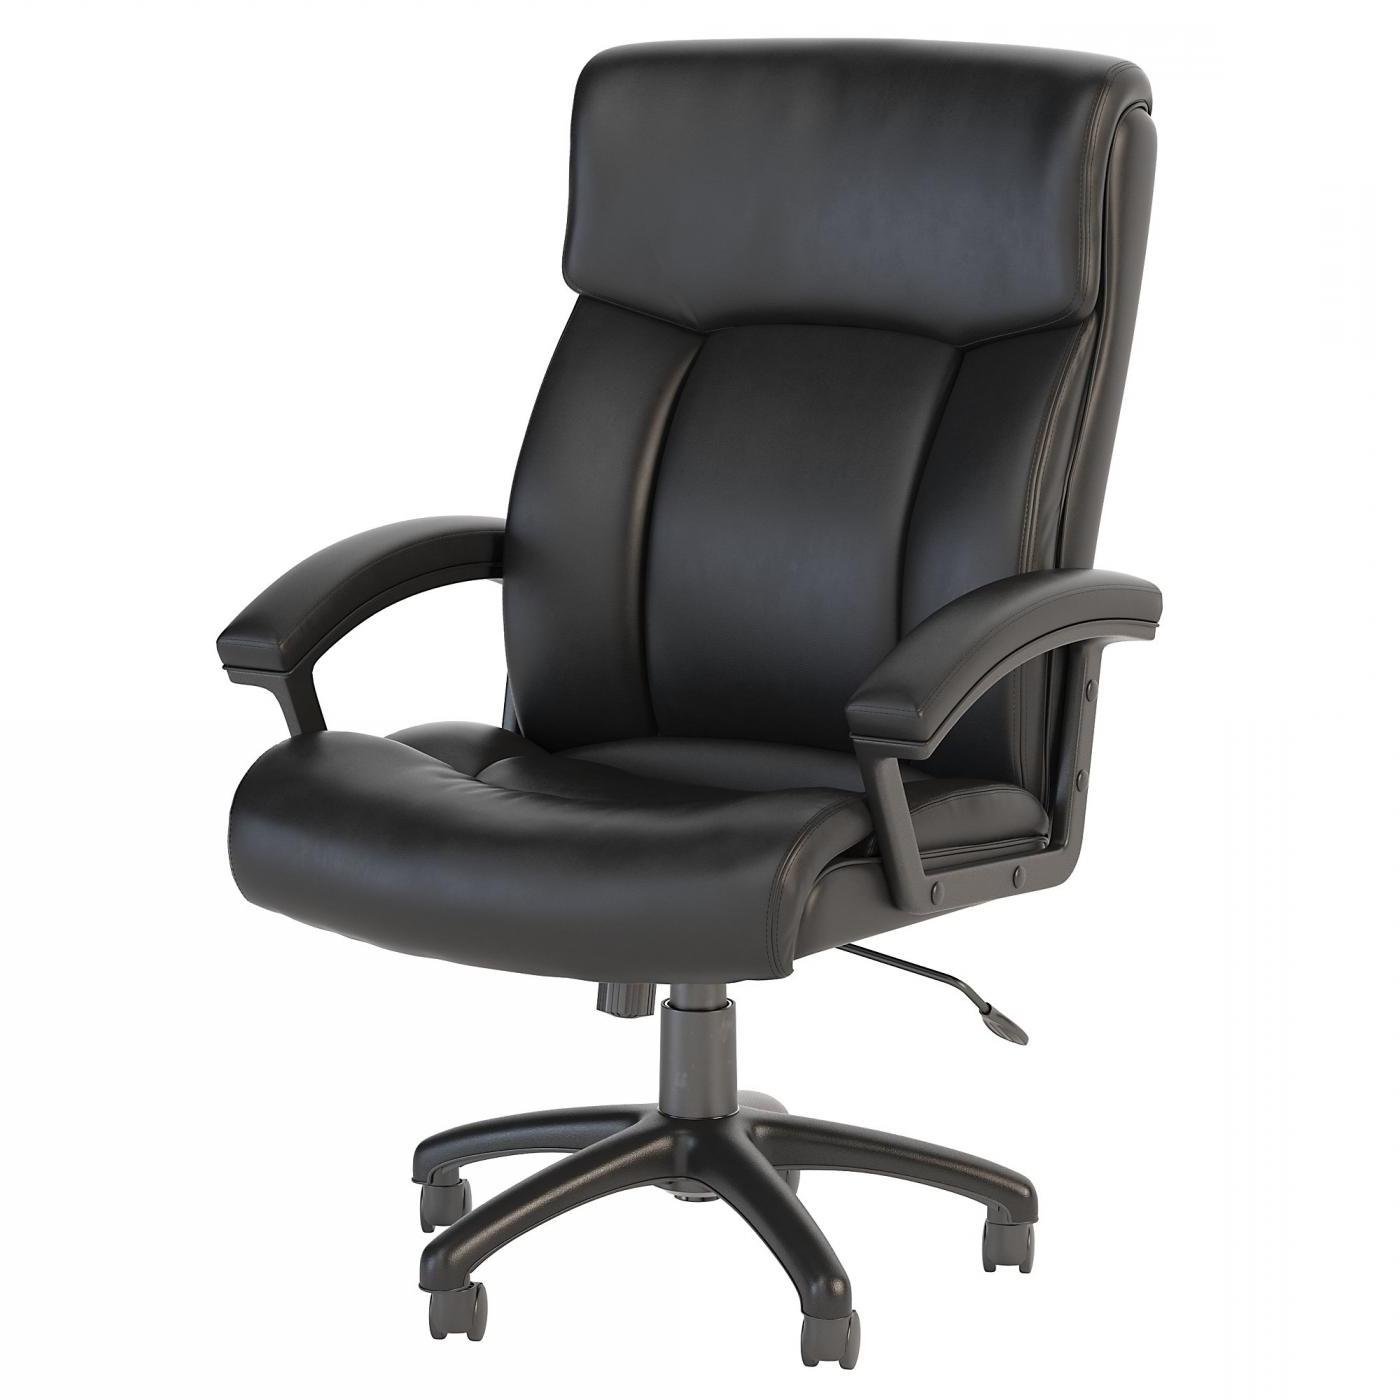 BUSH BUSINESS FURNITURE STANTON PLUS HIGH BACK LEATHER EXECUTIVE OFFICE CHAIR. FREE SHIPPING.